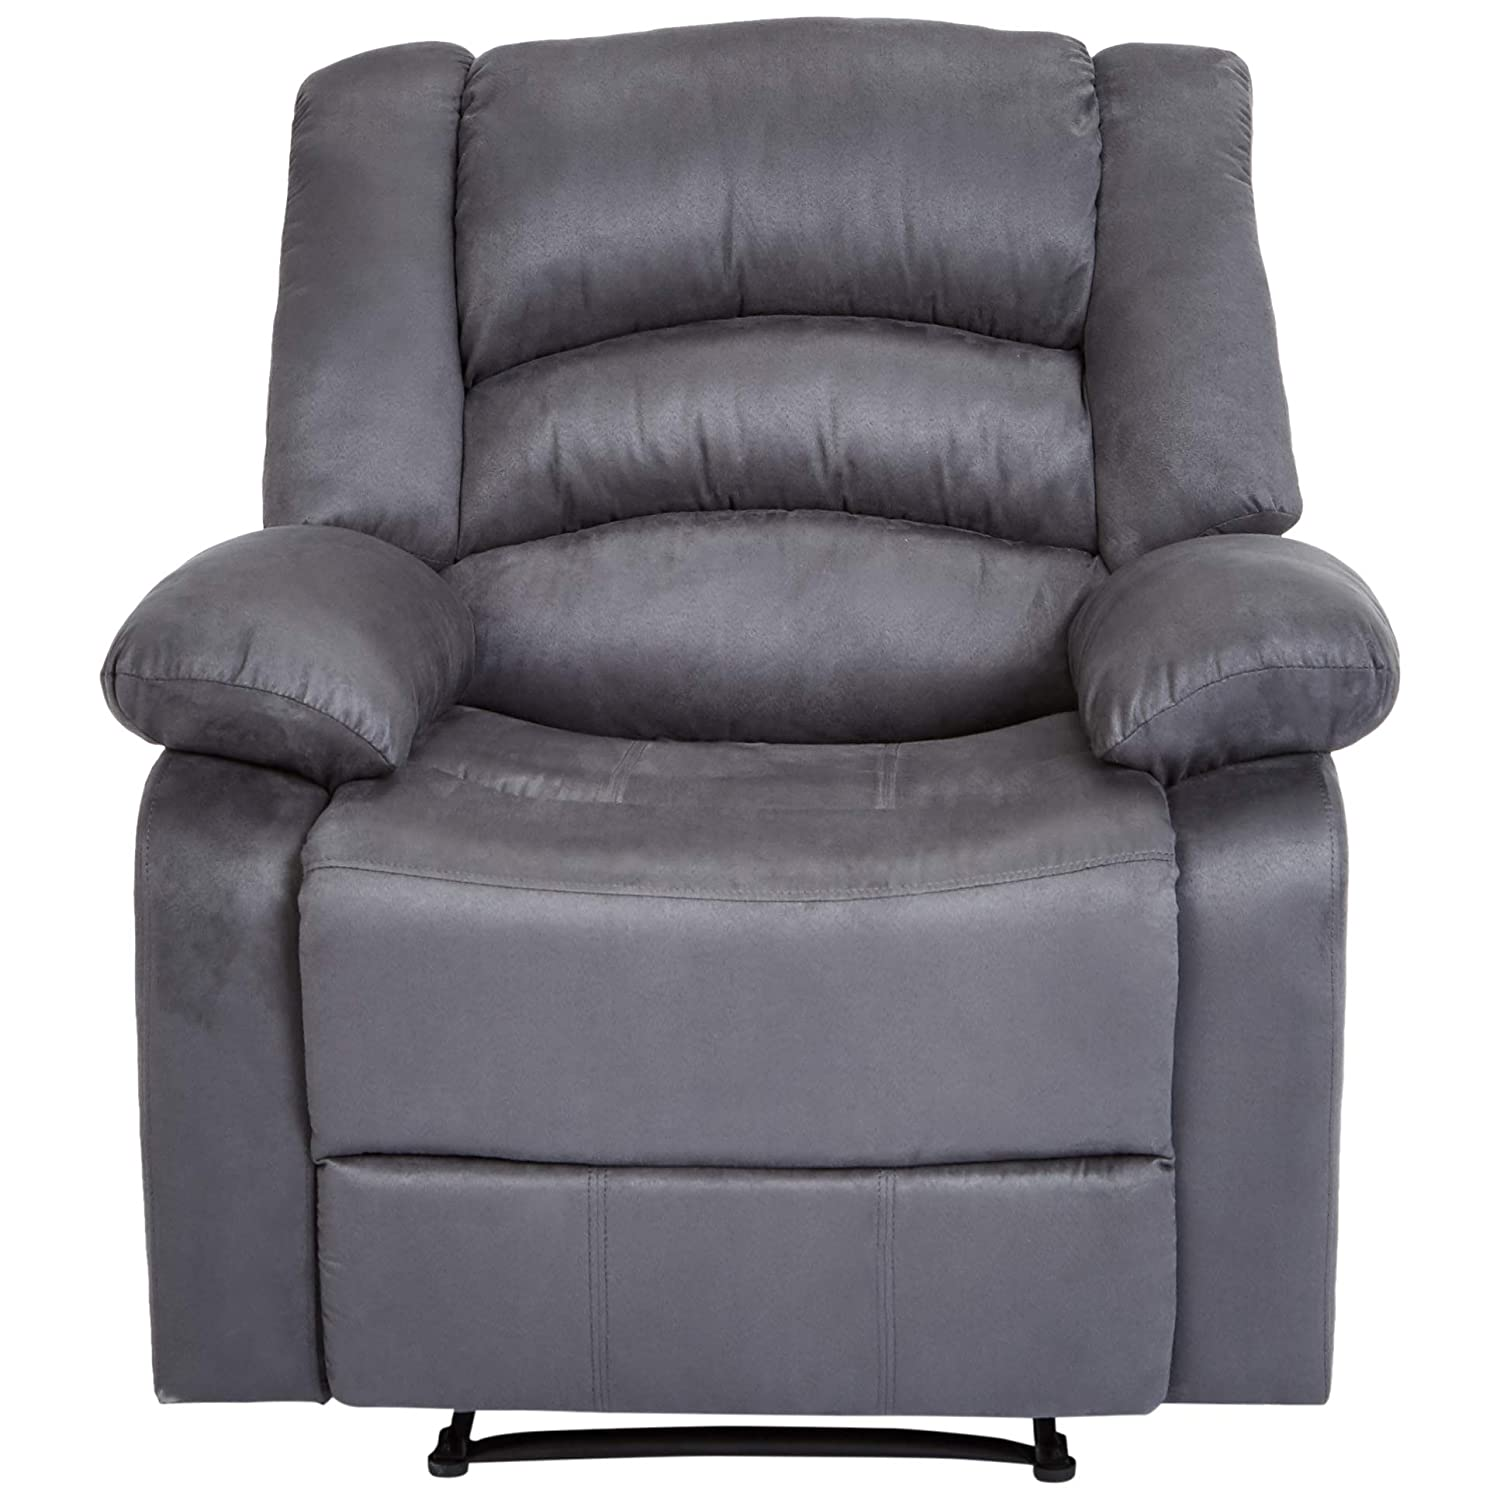 JC Home Liano Recliner Chair with Microfiber Upholstery, Stone Blue